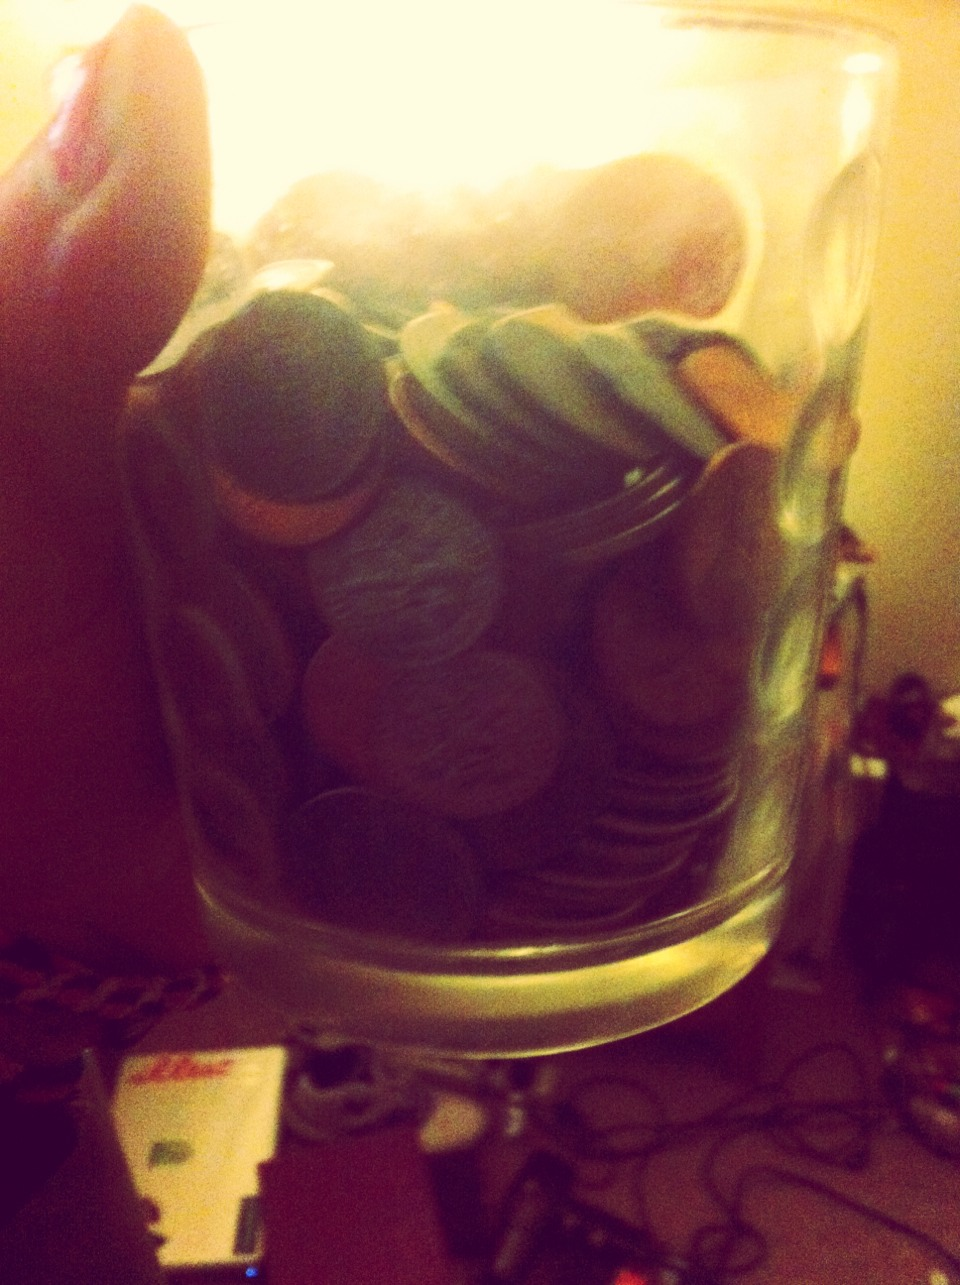 Ways To Make Quick Cash!!$$ - Musely